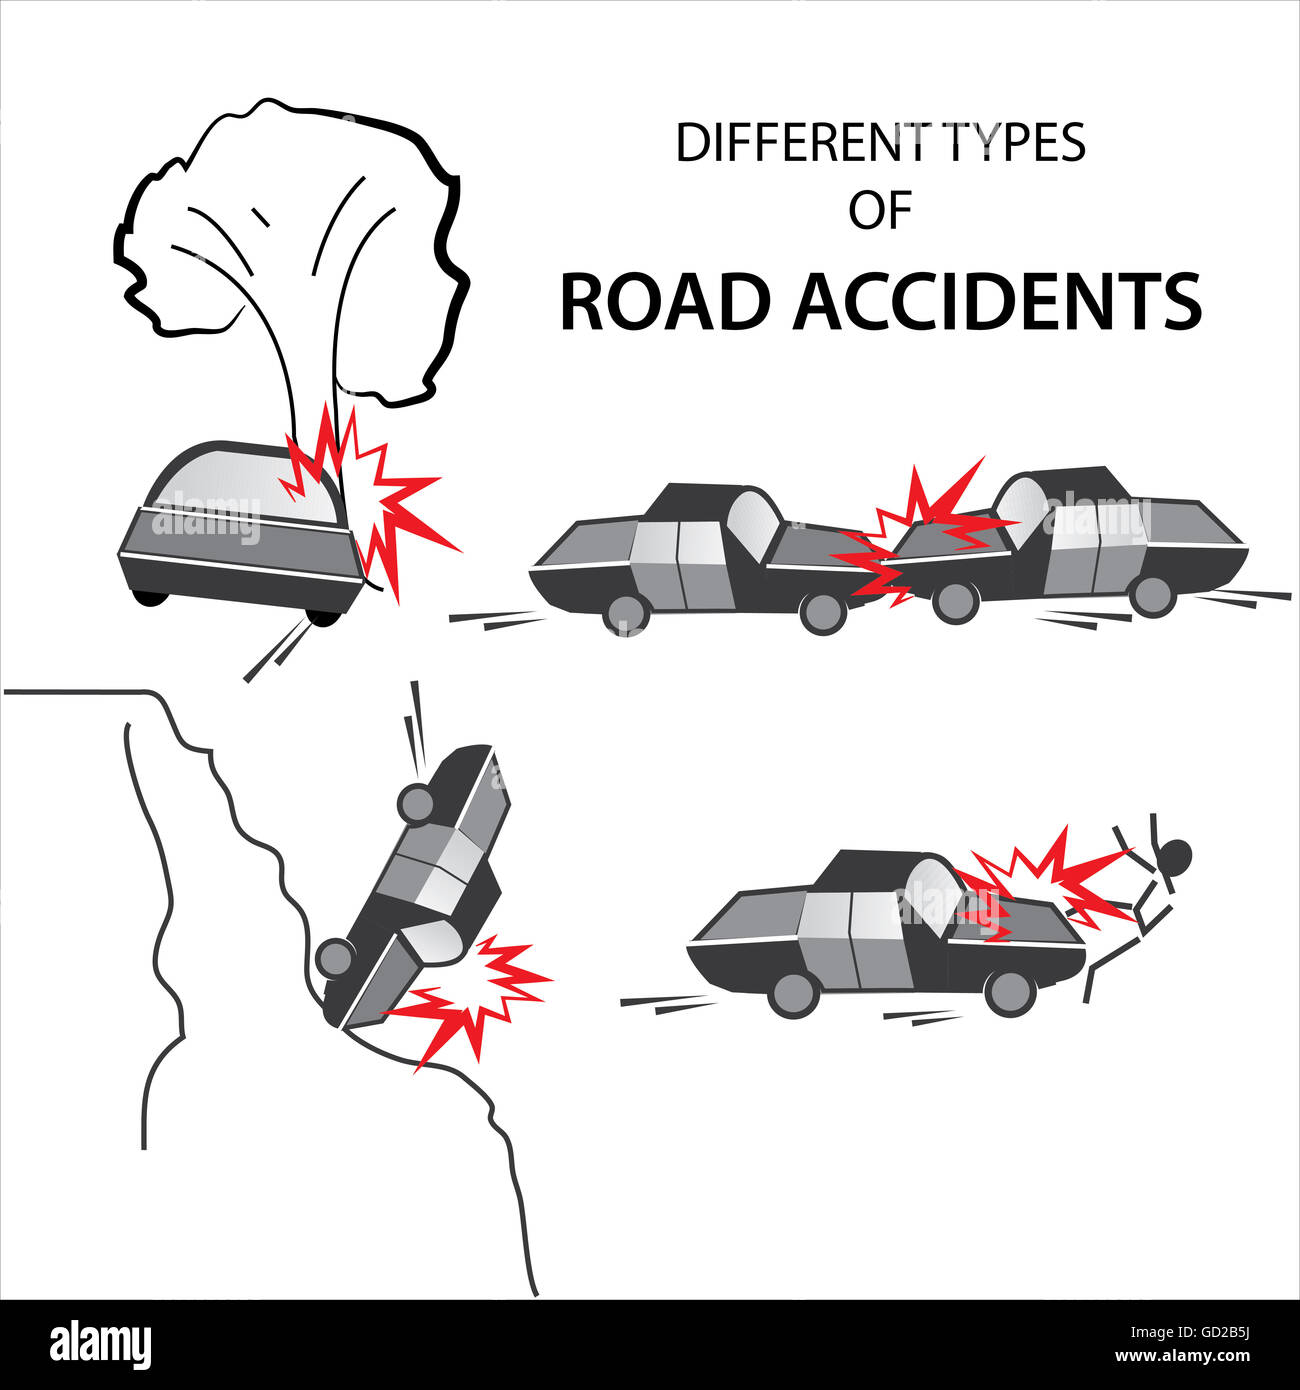 Road Accidents Stock Photos & Road Accidents Stock Images